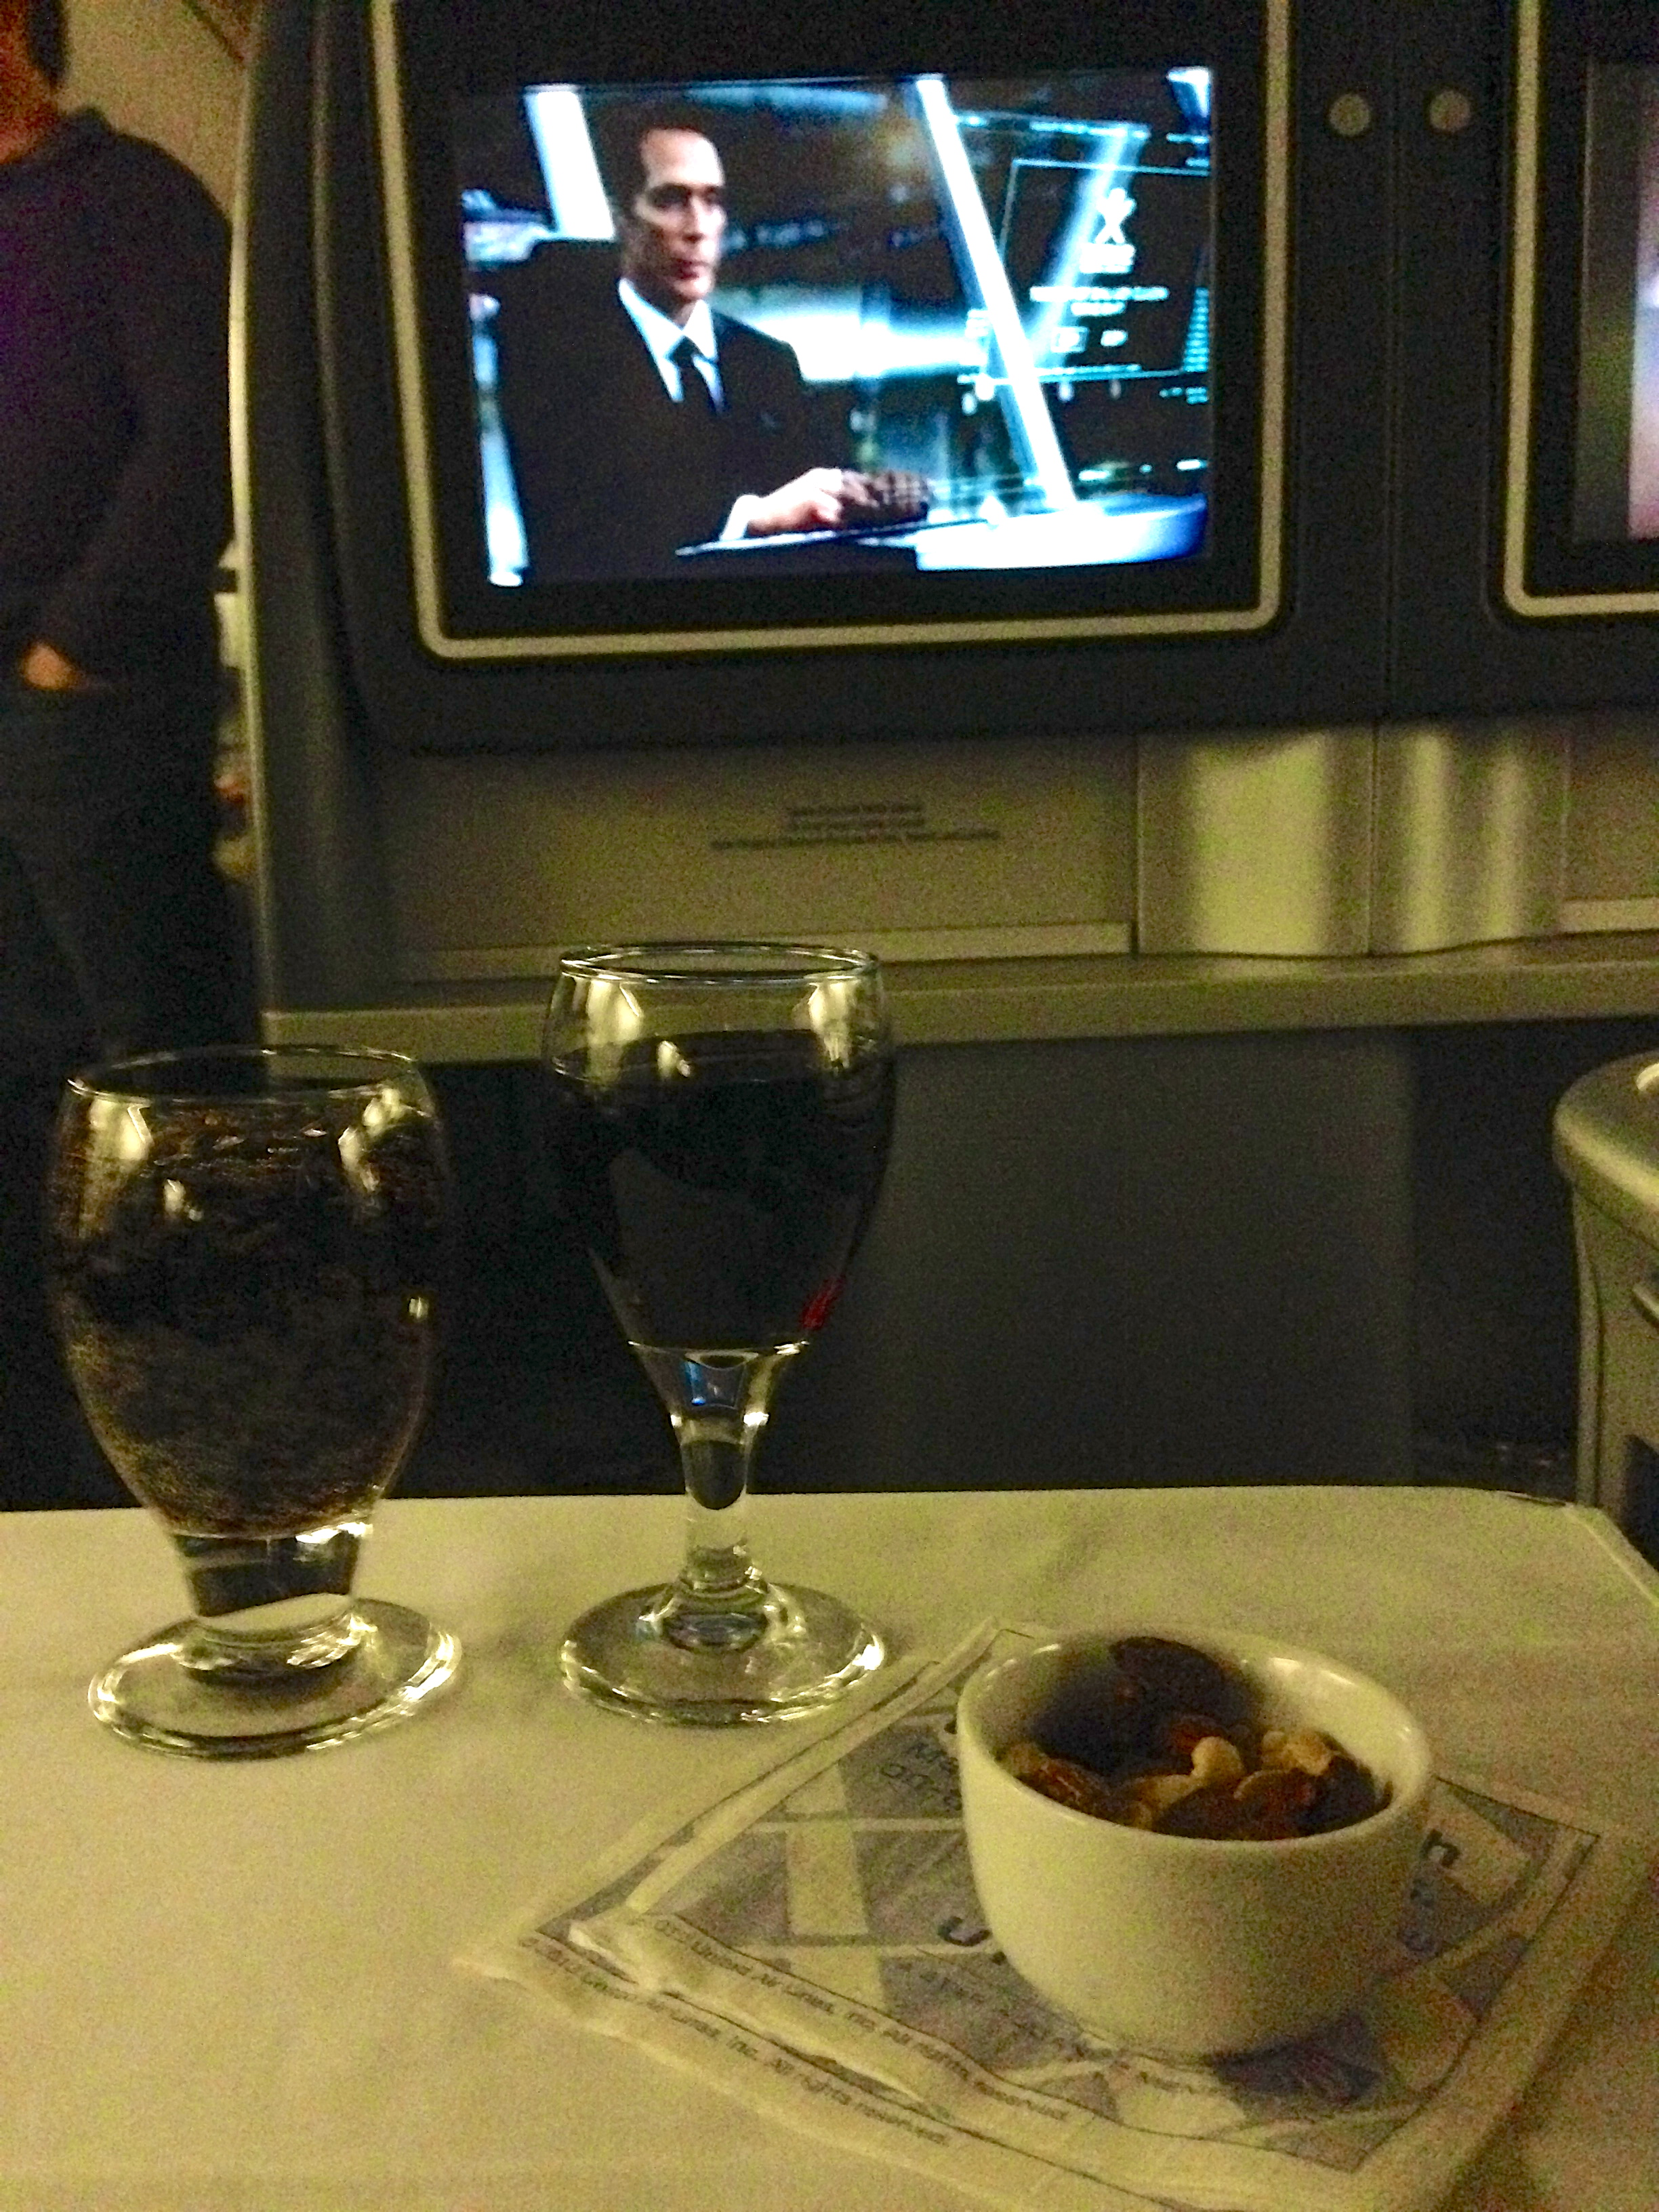 United Airlines Business Class 767-200 BusinessFirst Cocktail Service and Warm Nuts Chicago to Amsterdam